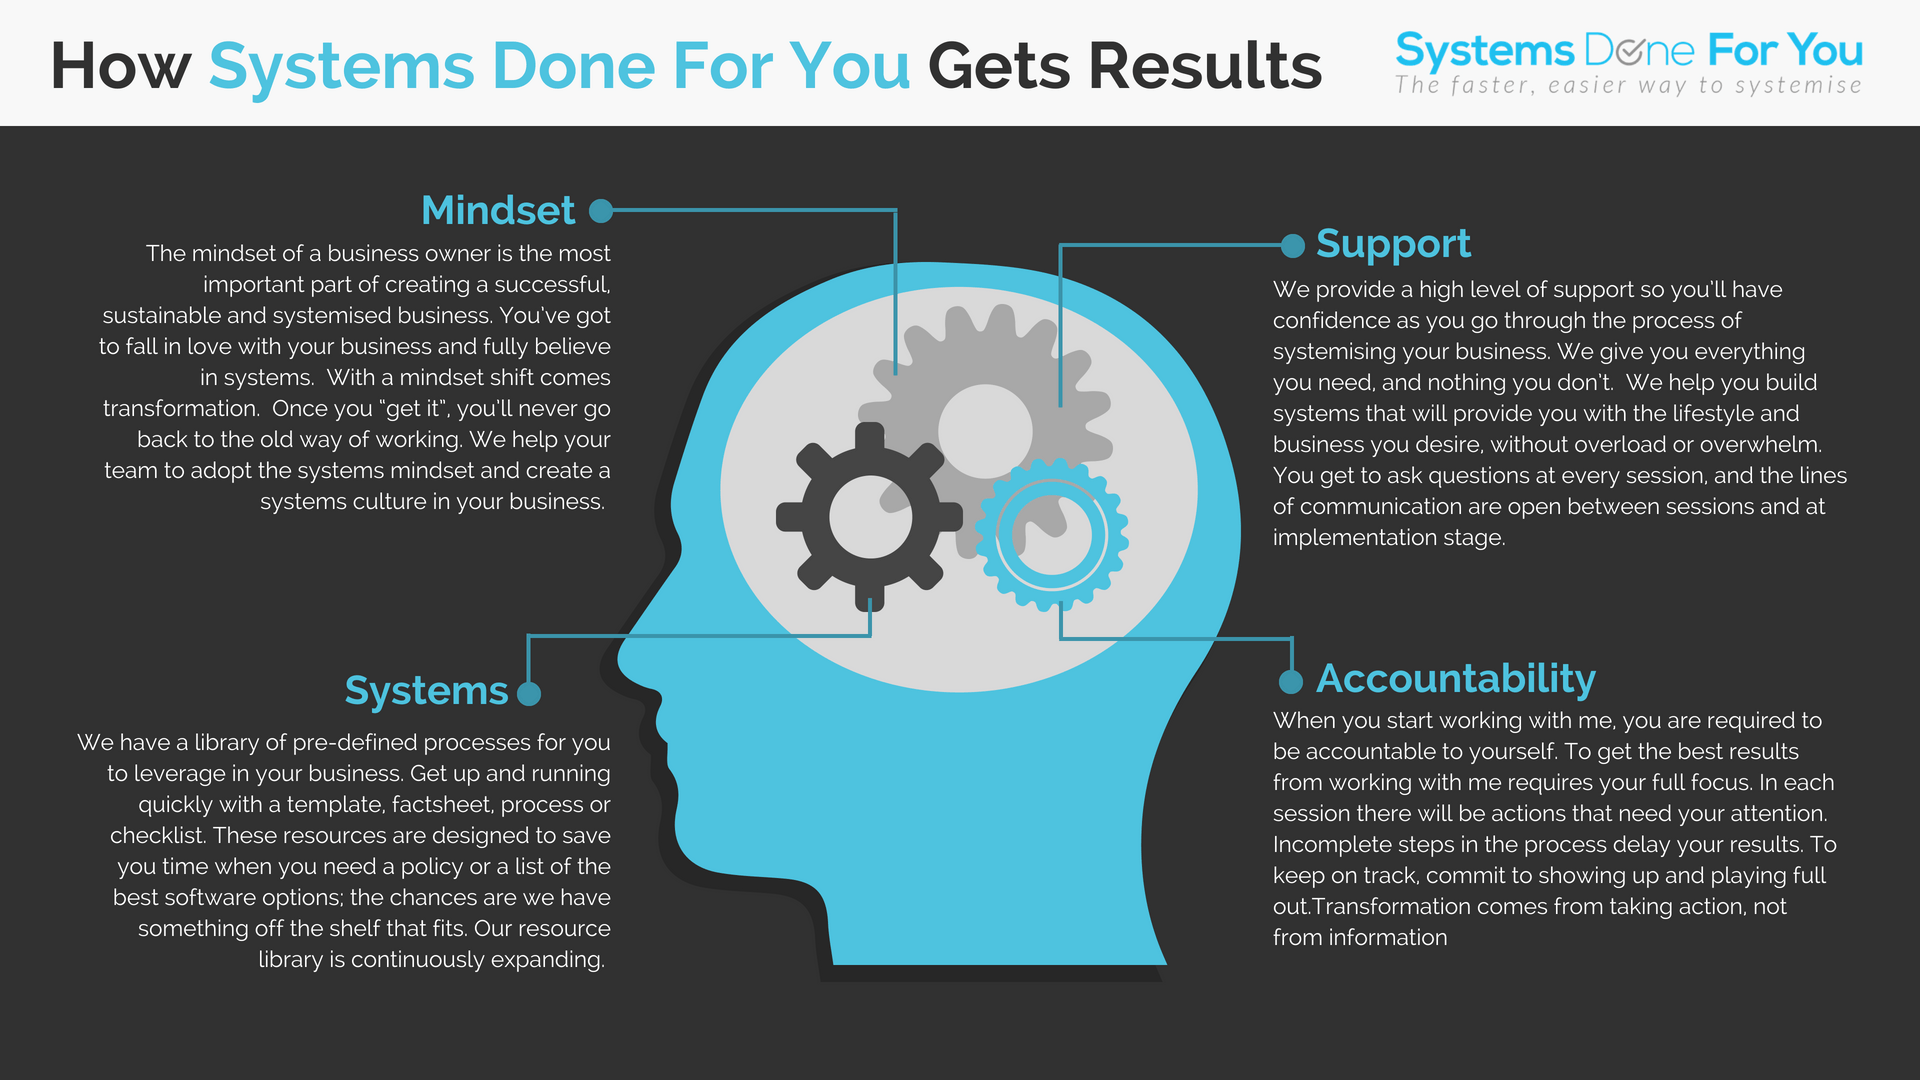 How Systems Done For You Gets Results